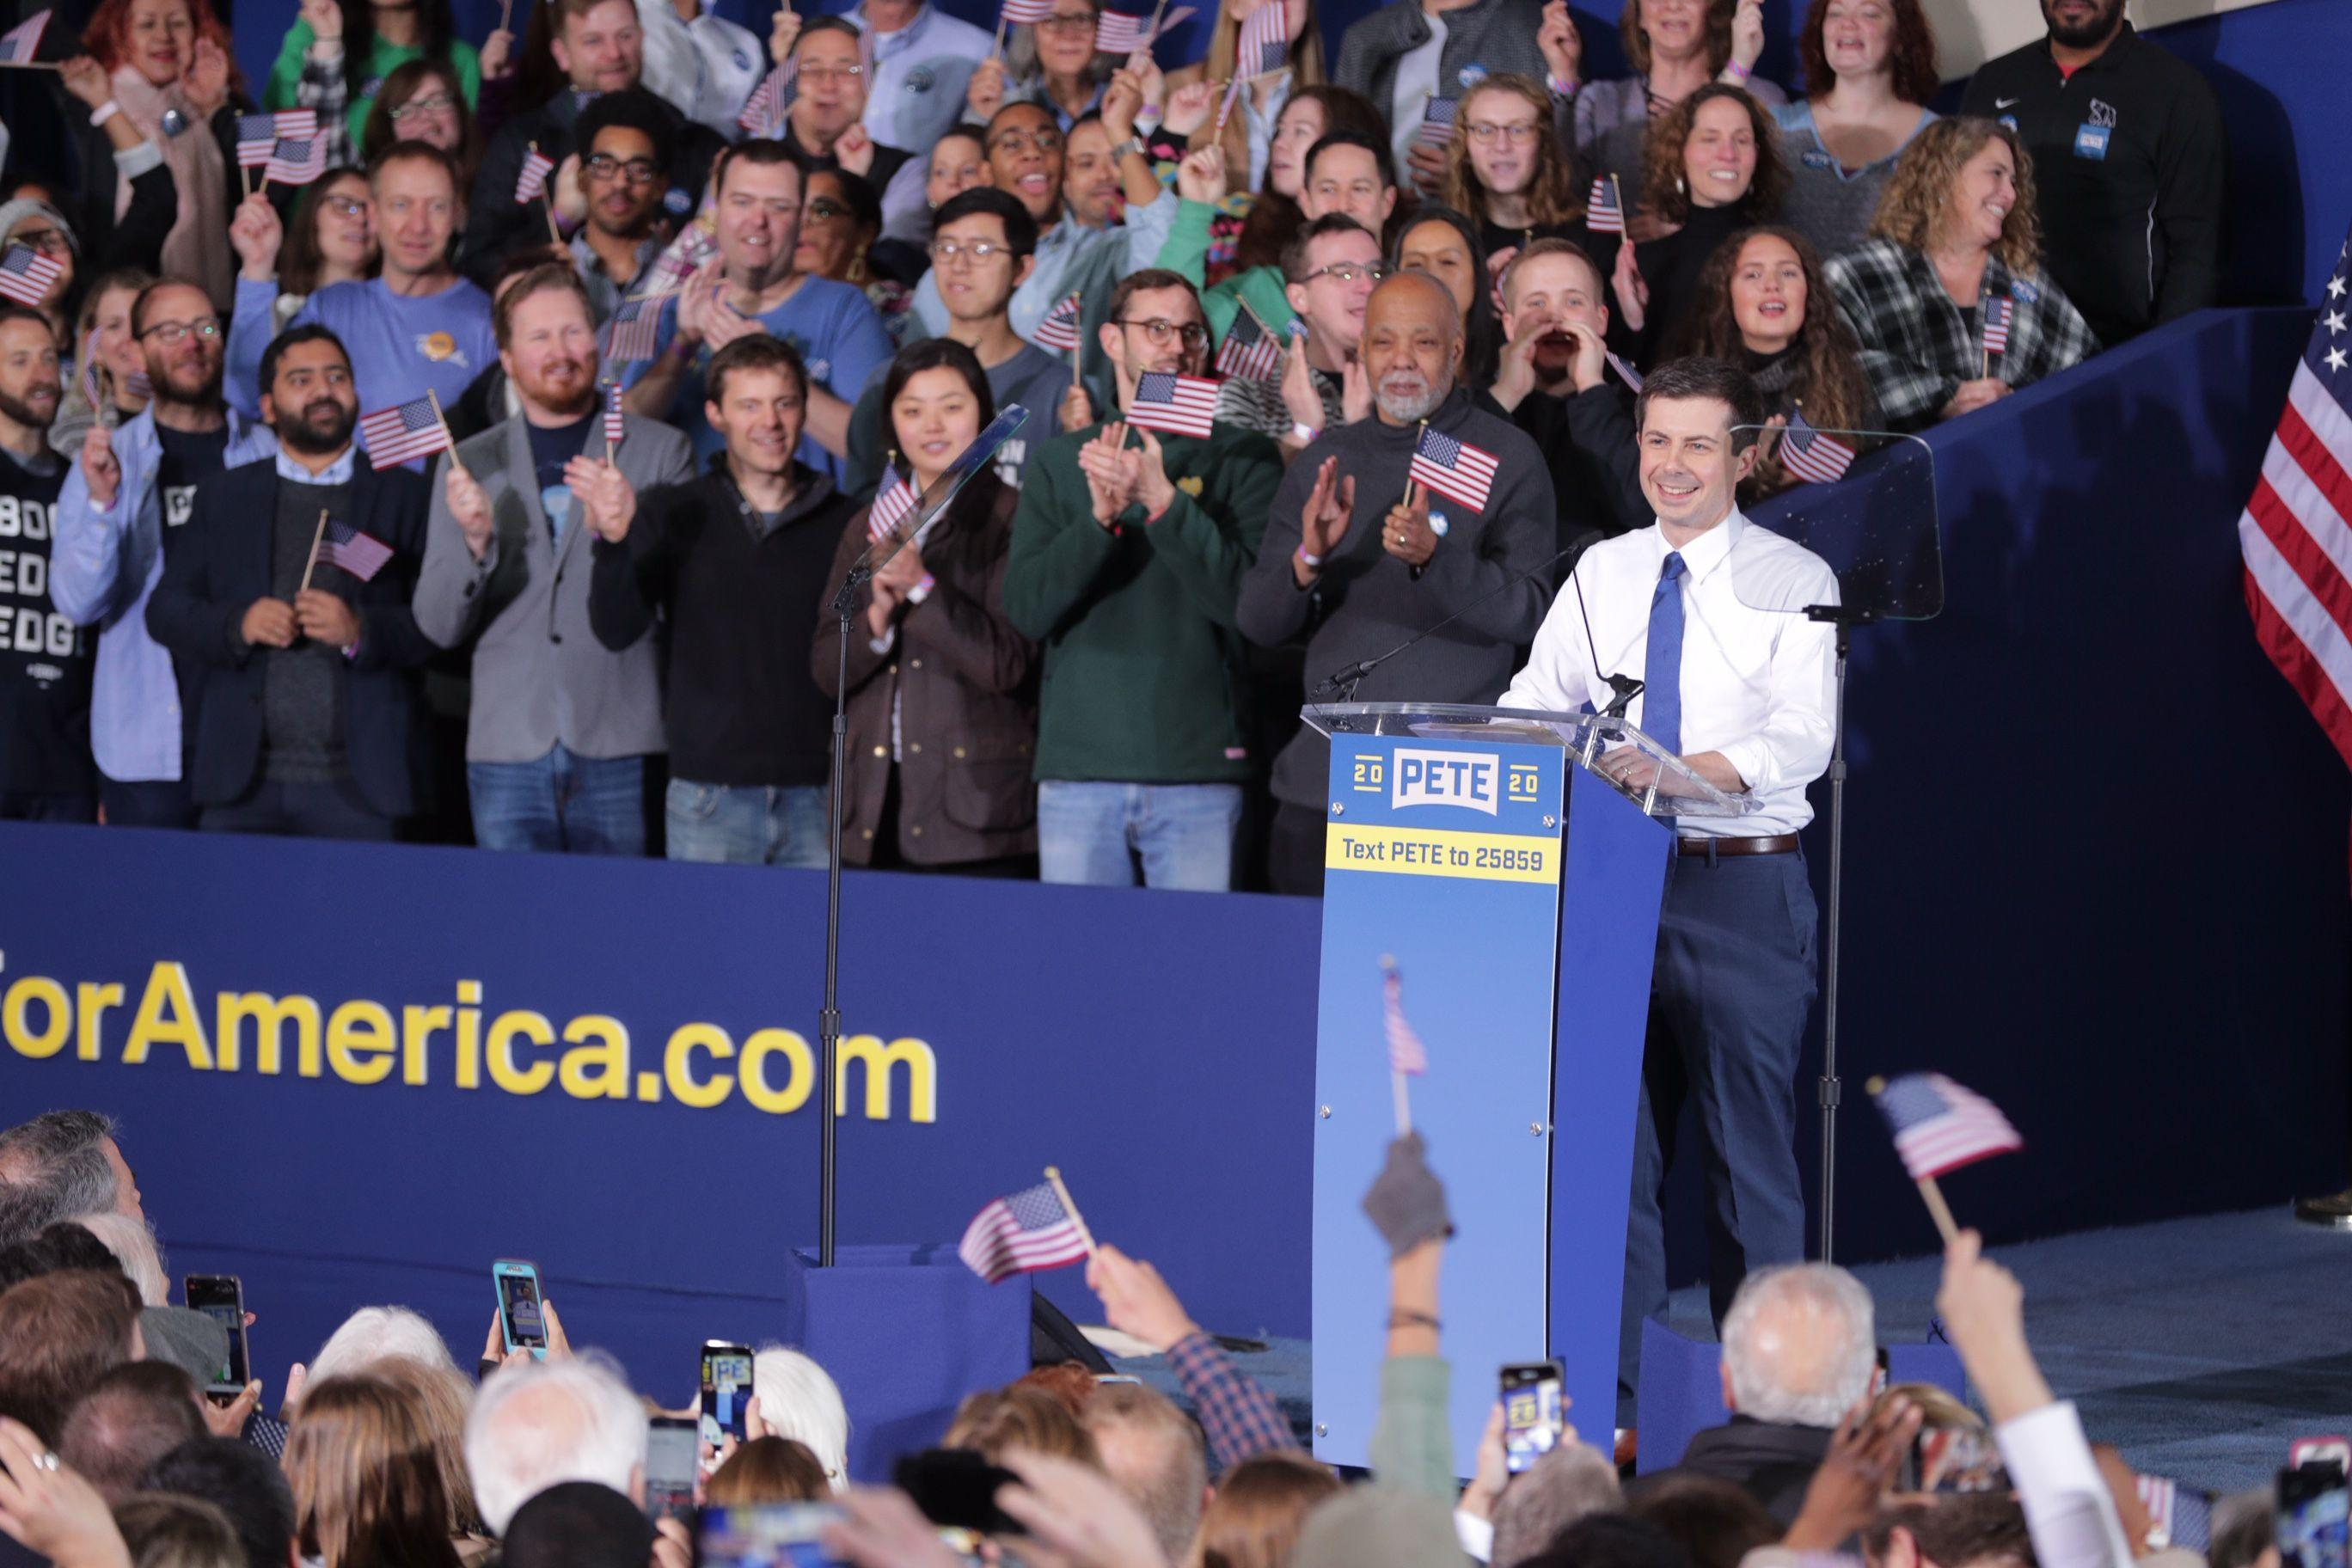 South Bend Mayor Pete Buttigieg announced that he's officially running for the Democratic nomination for president in 2020.